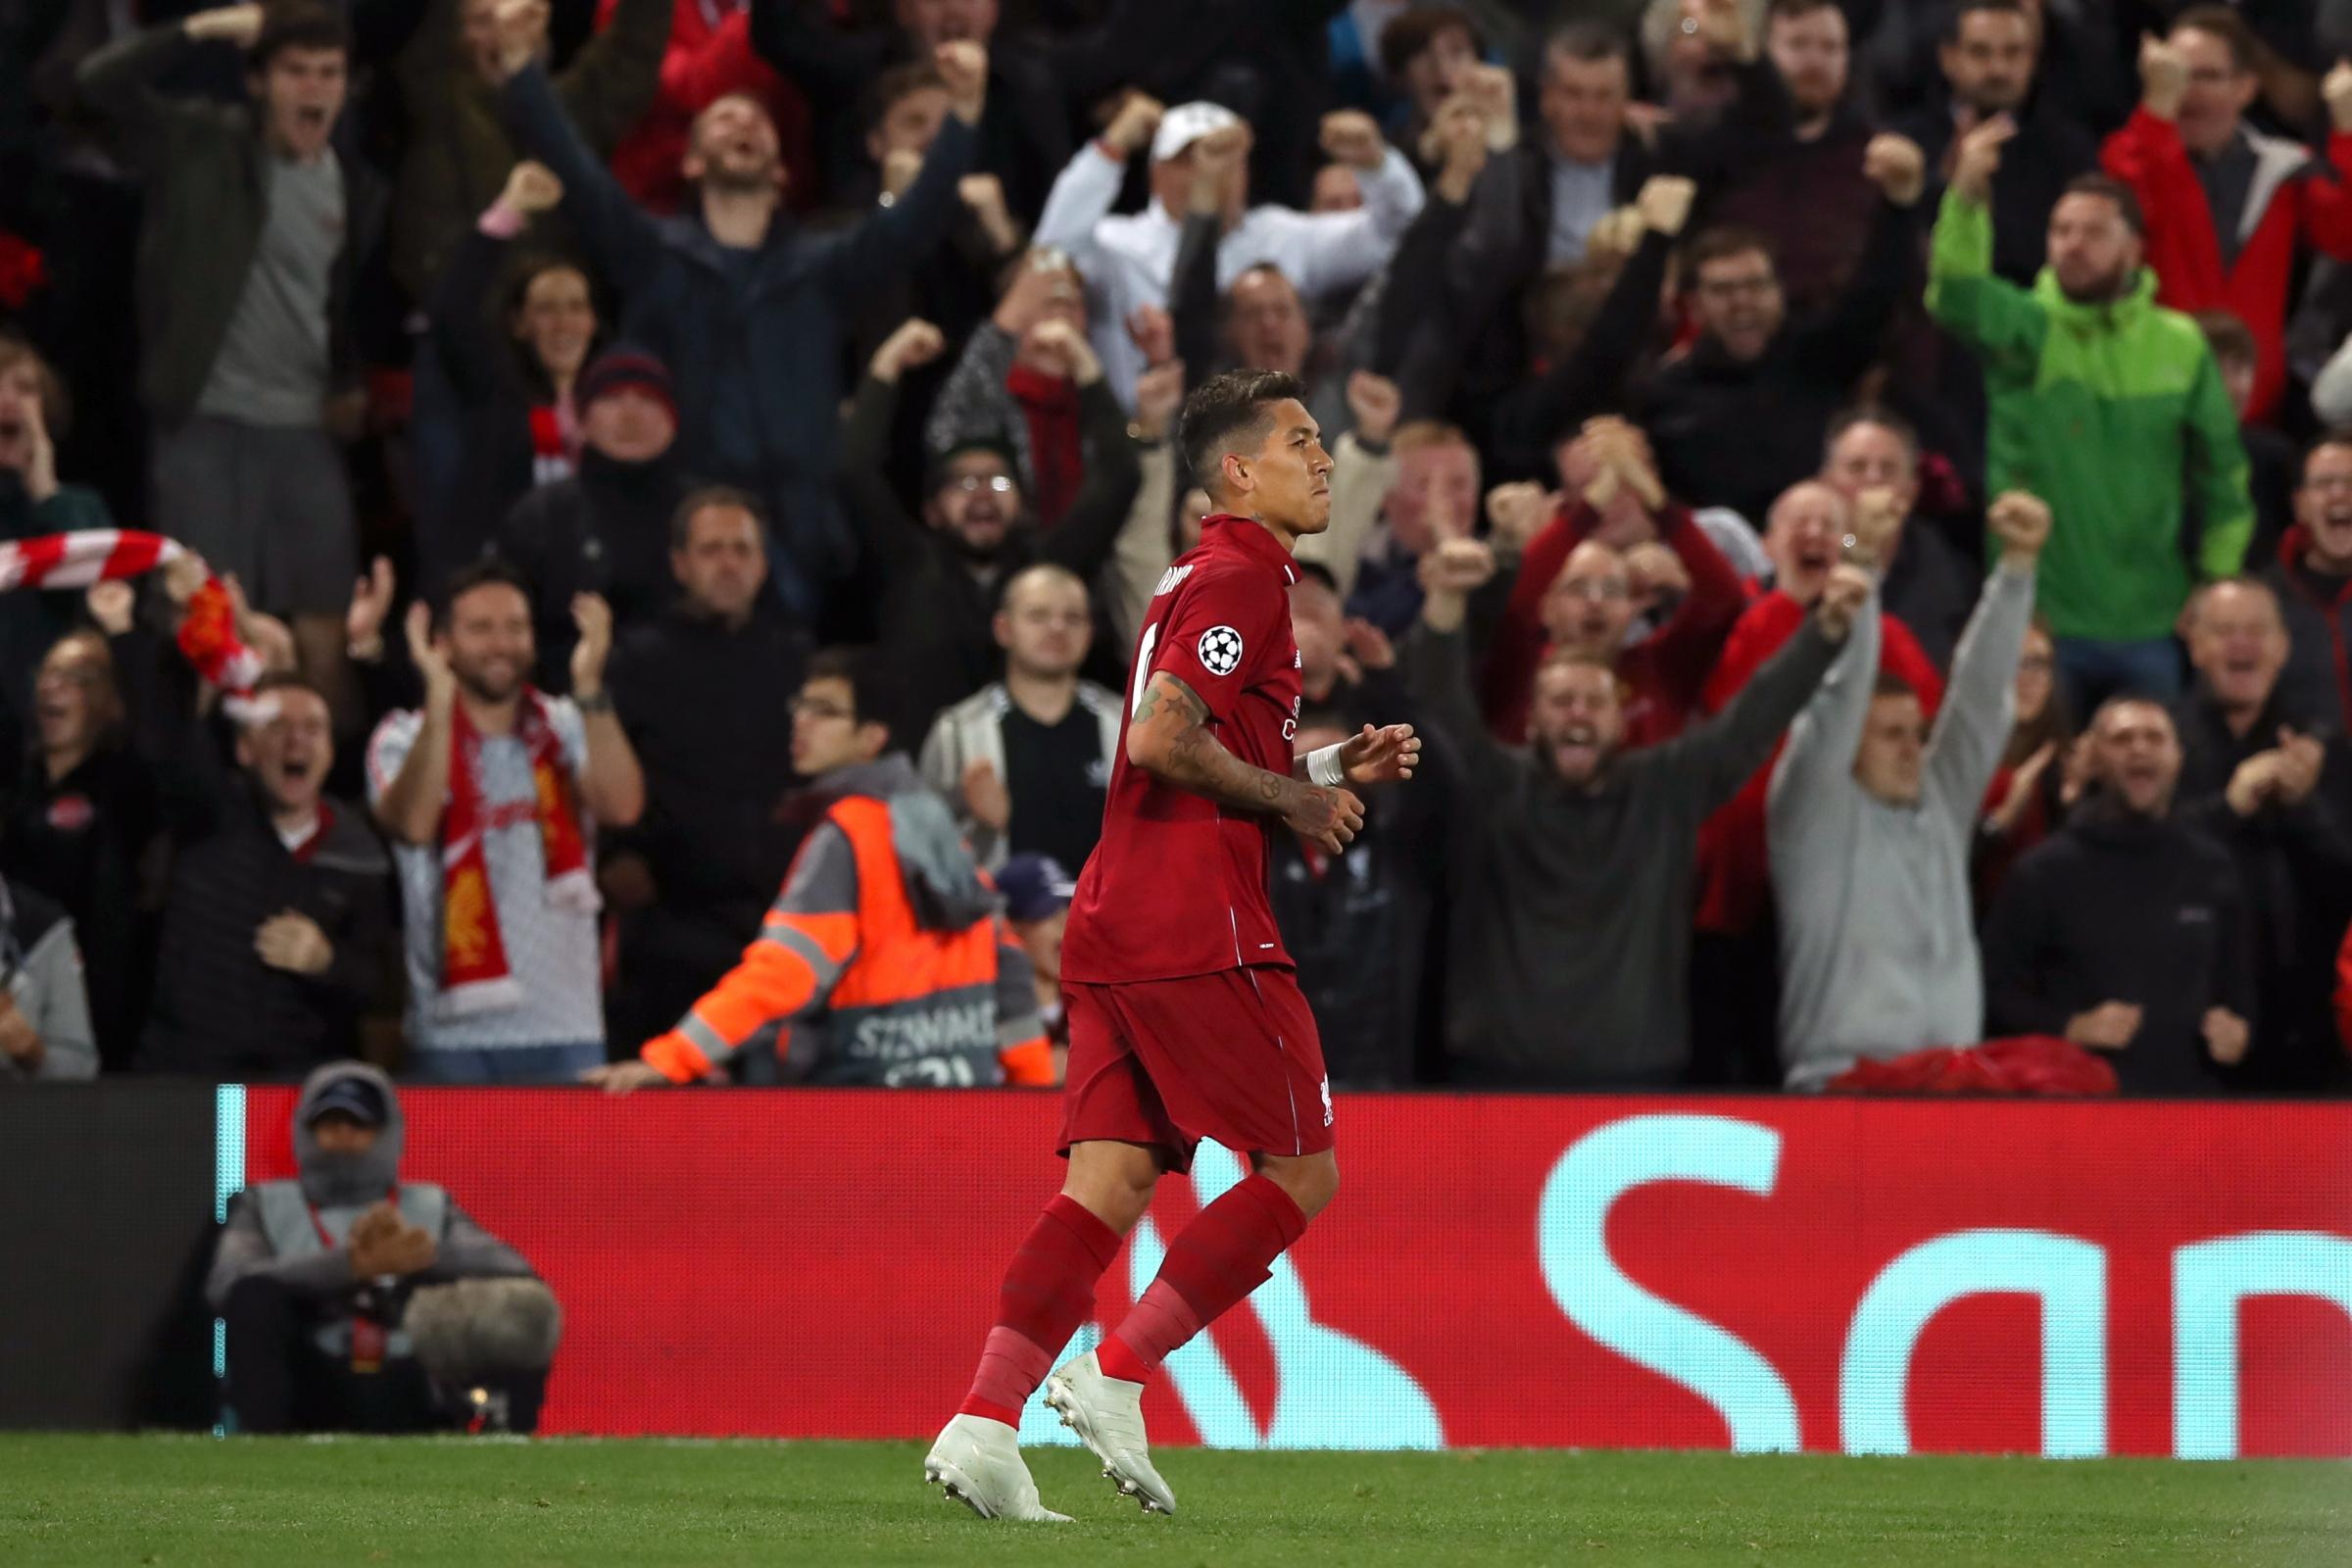 Roberto Firmino was Liverpool's match-winner against Paris St Germain after recovering from an eye injury.